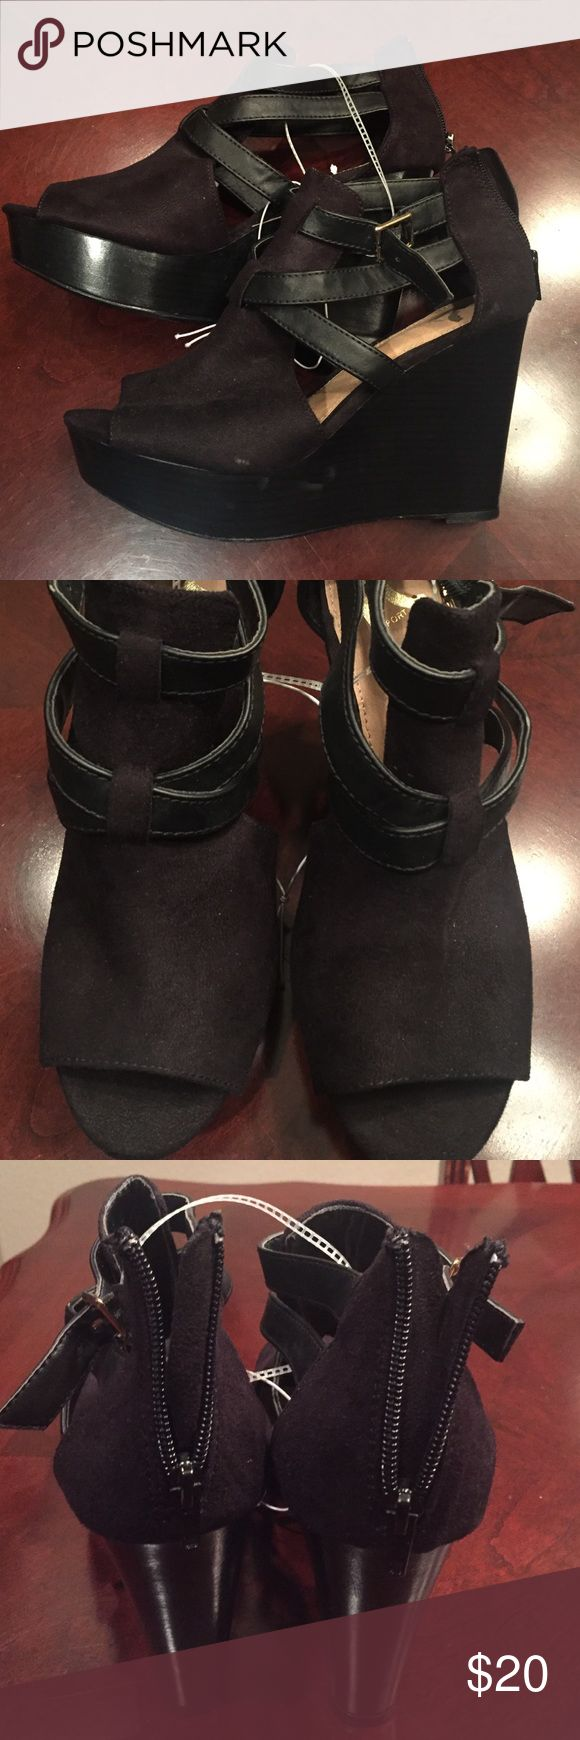 """Black wedge sandals - brand new, never worn These are darling black wedge sandals - brand new & never worn. They have a 5"""" heel Report Shoes"""